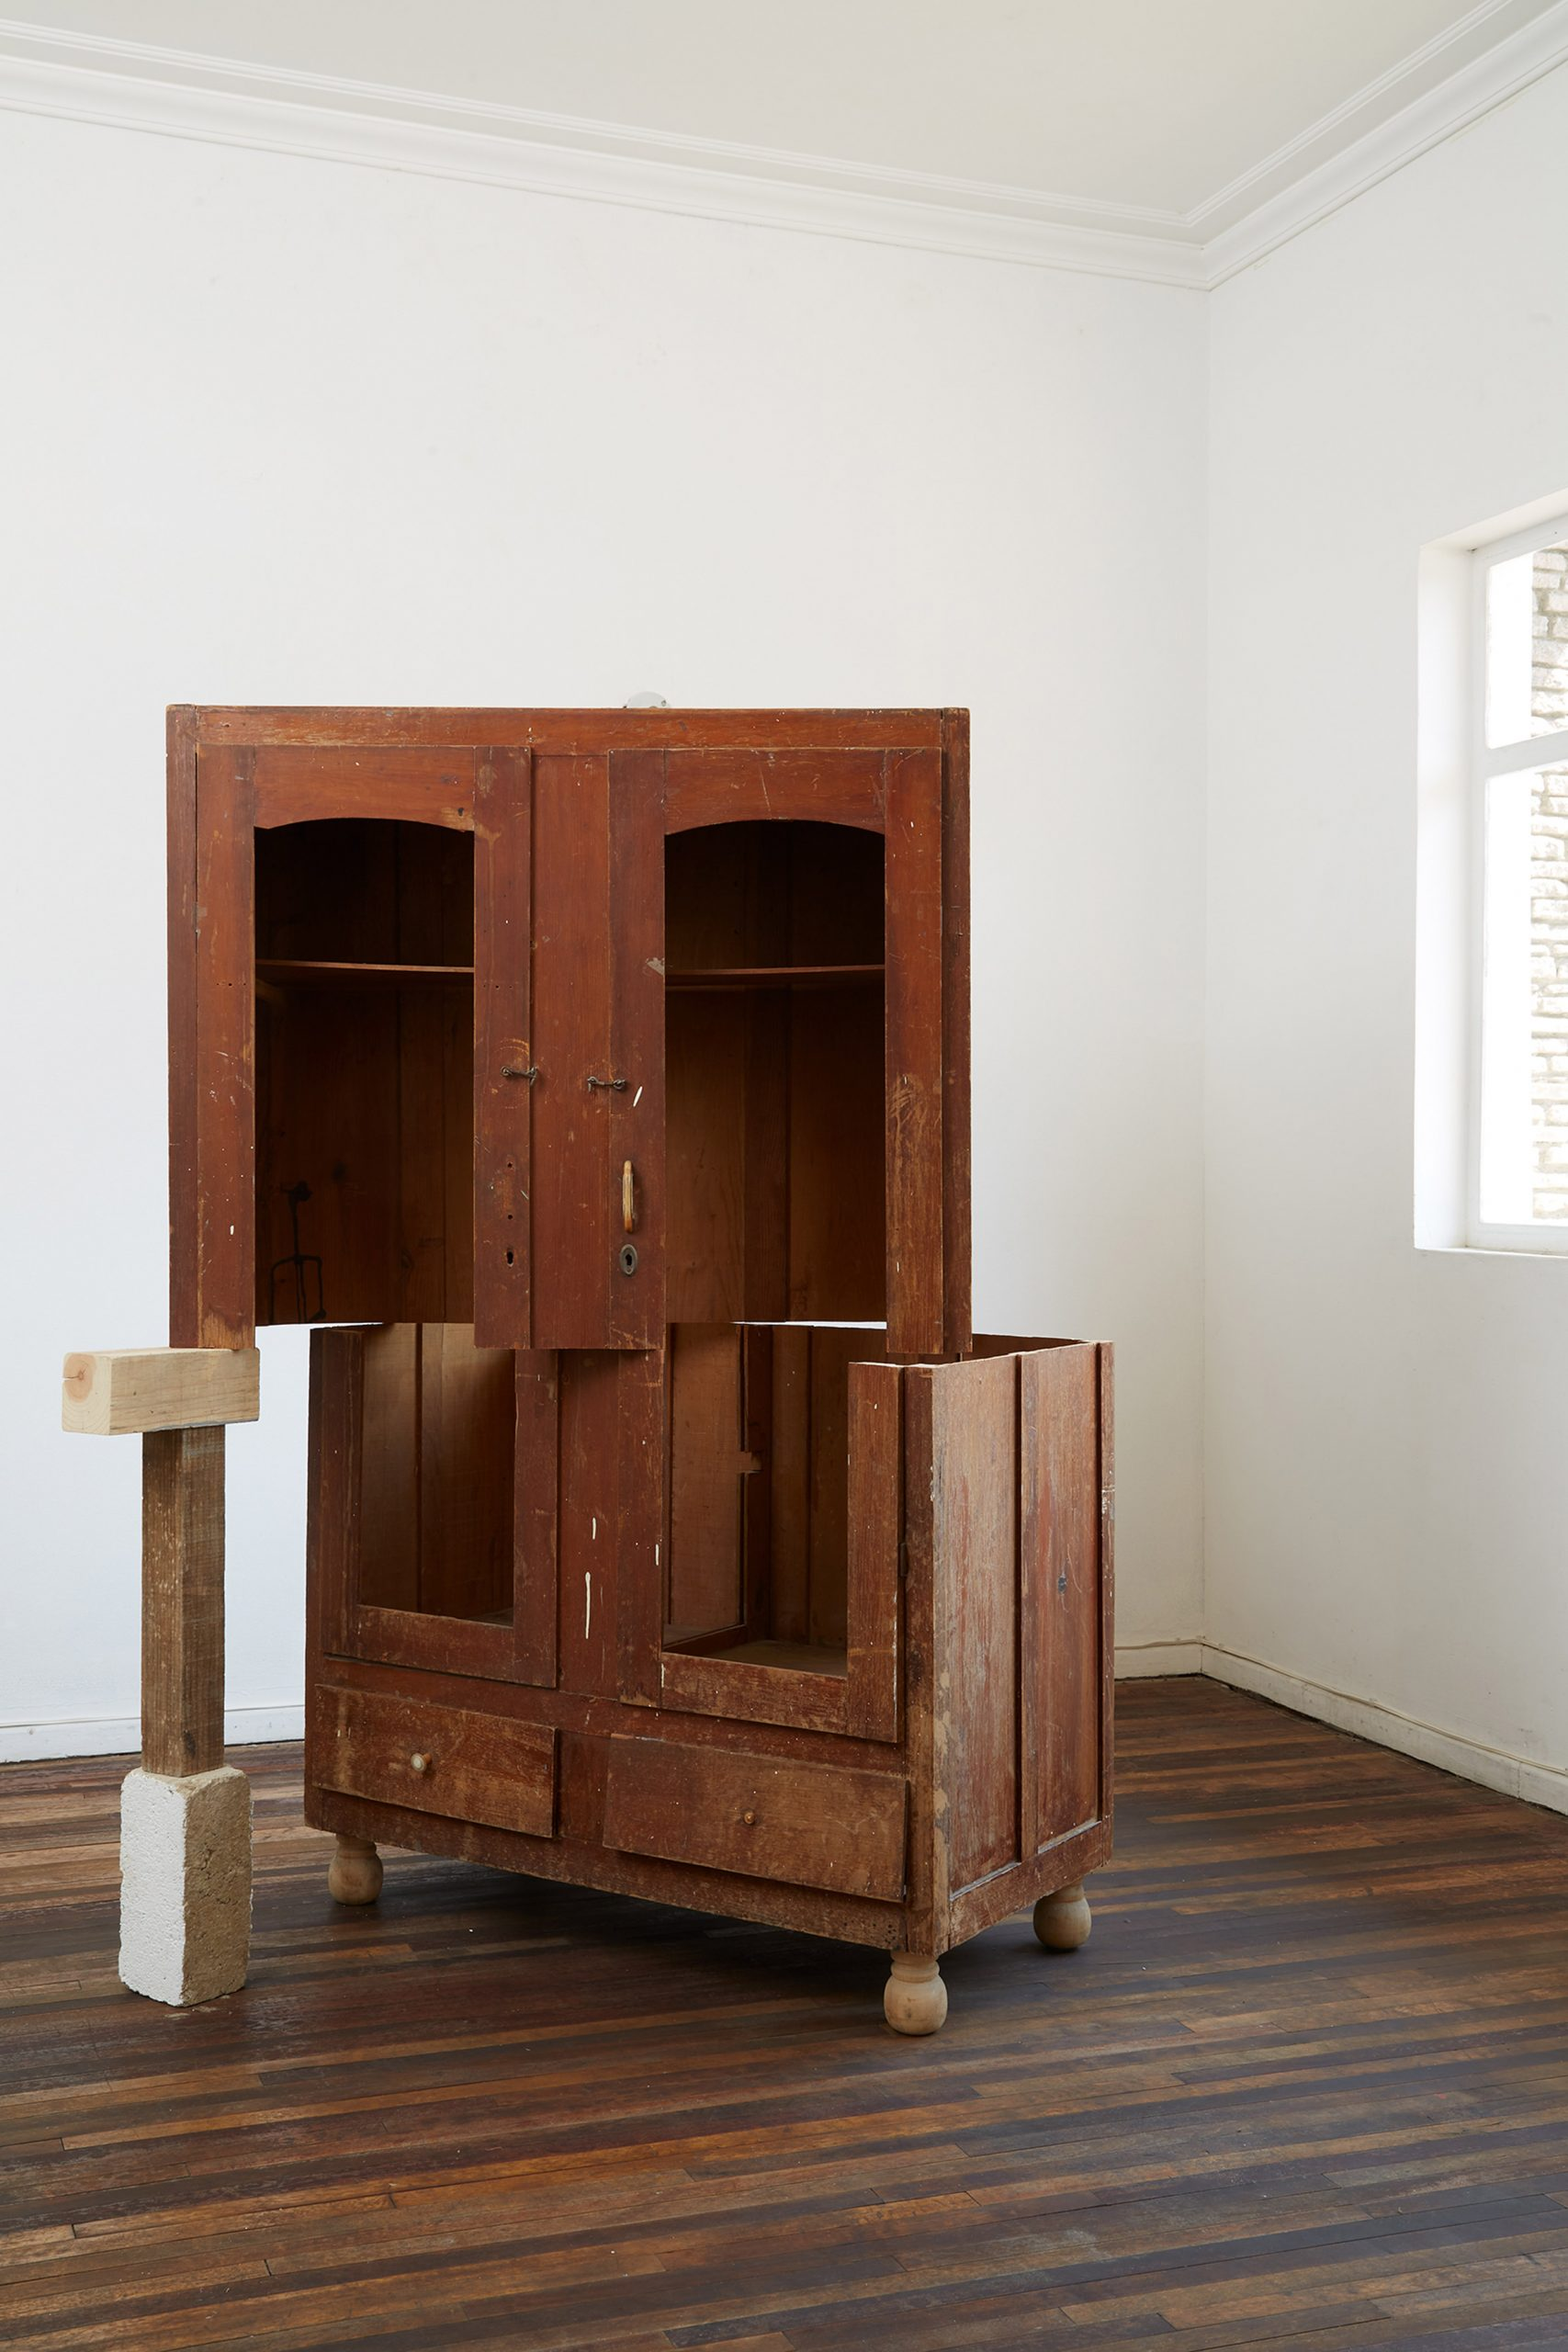 A fractured wooden cupboard